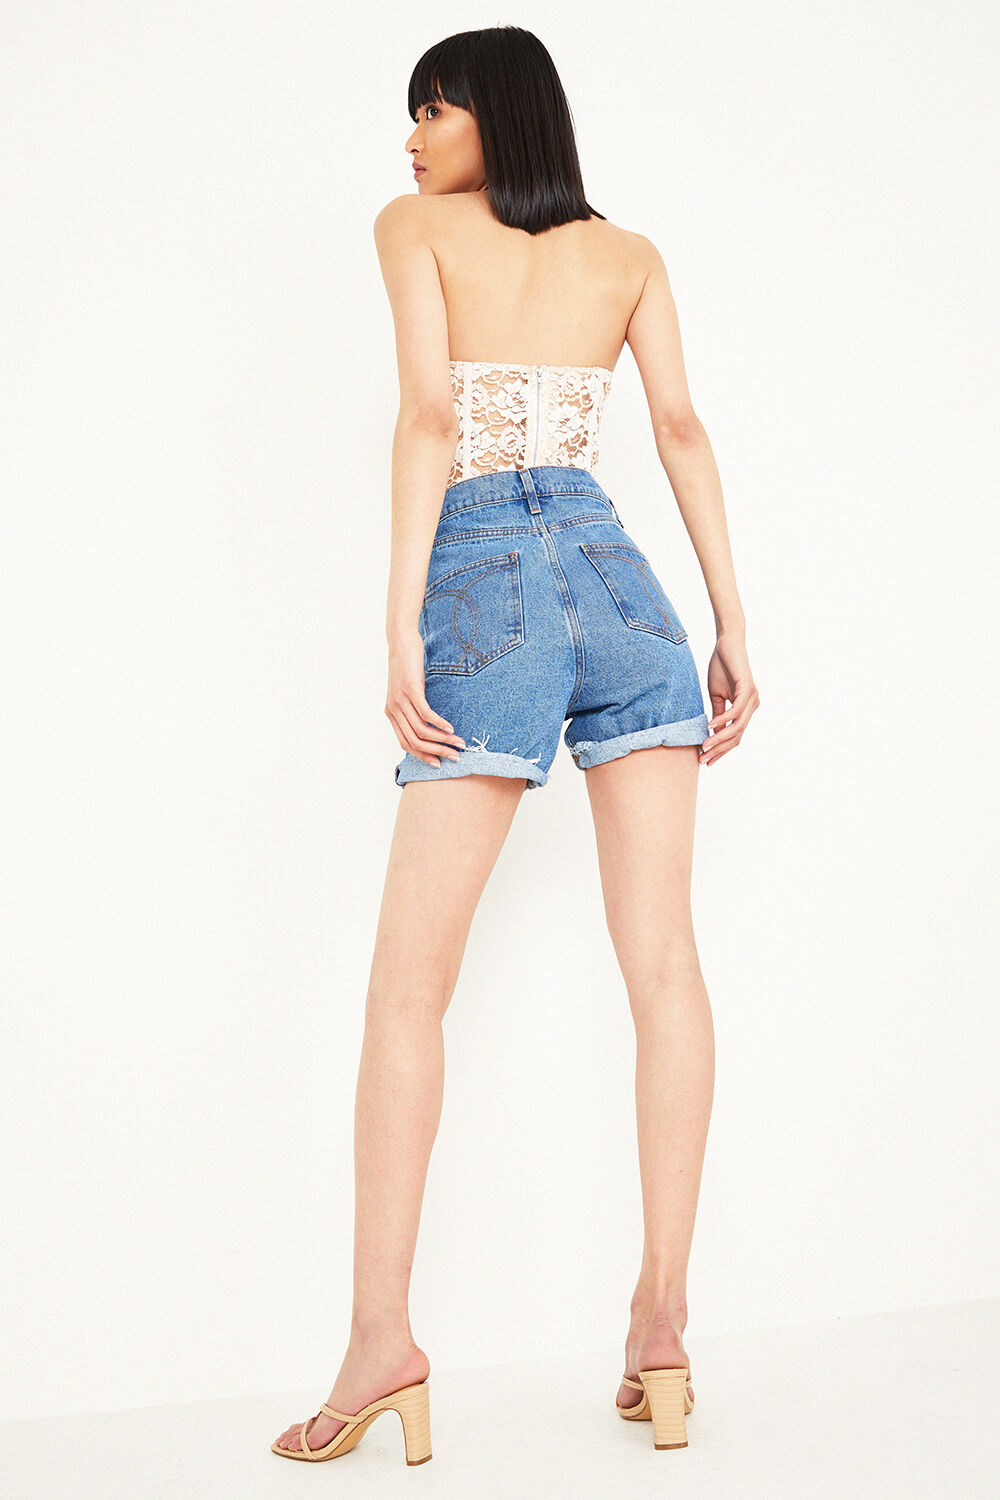 LACE CORSET BUSTIER in colour GRAY LILAC